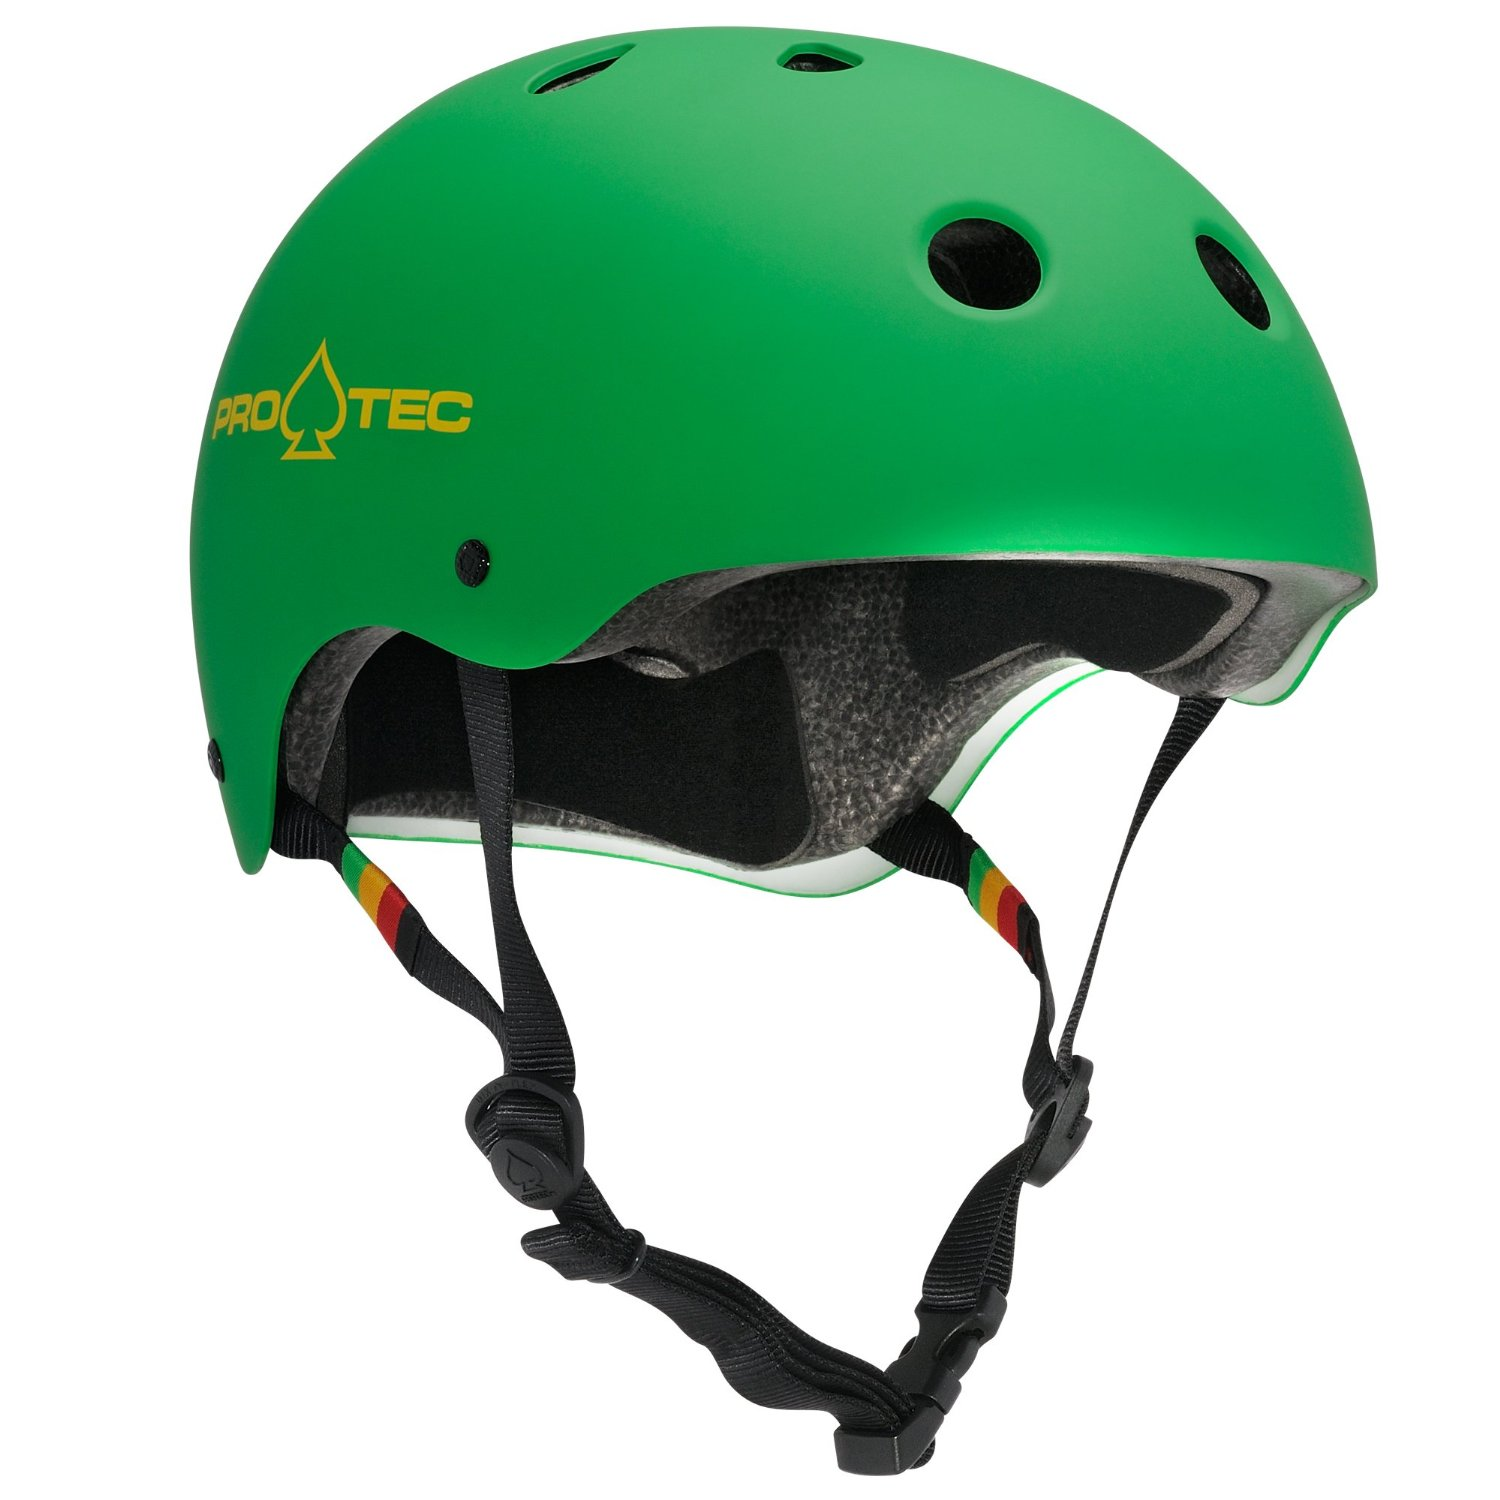 Green ProTec Bicycle Helmets